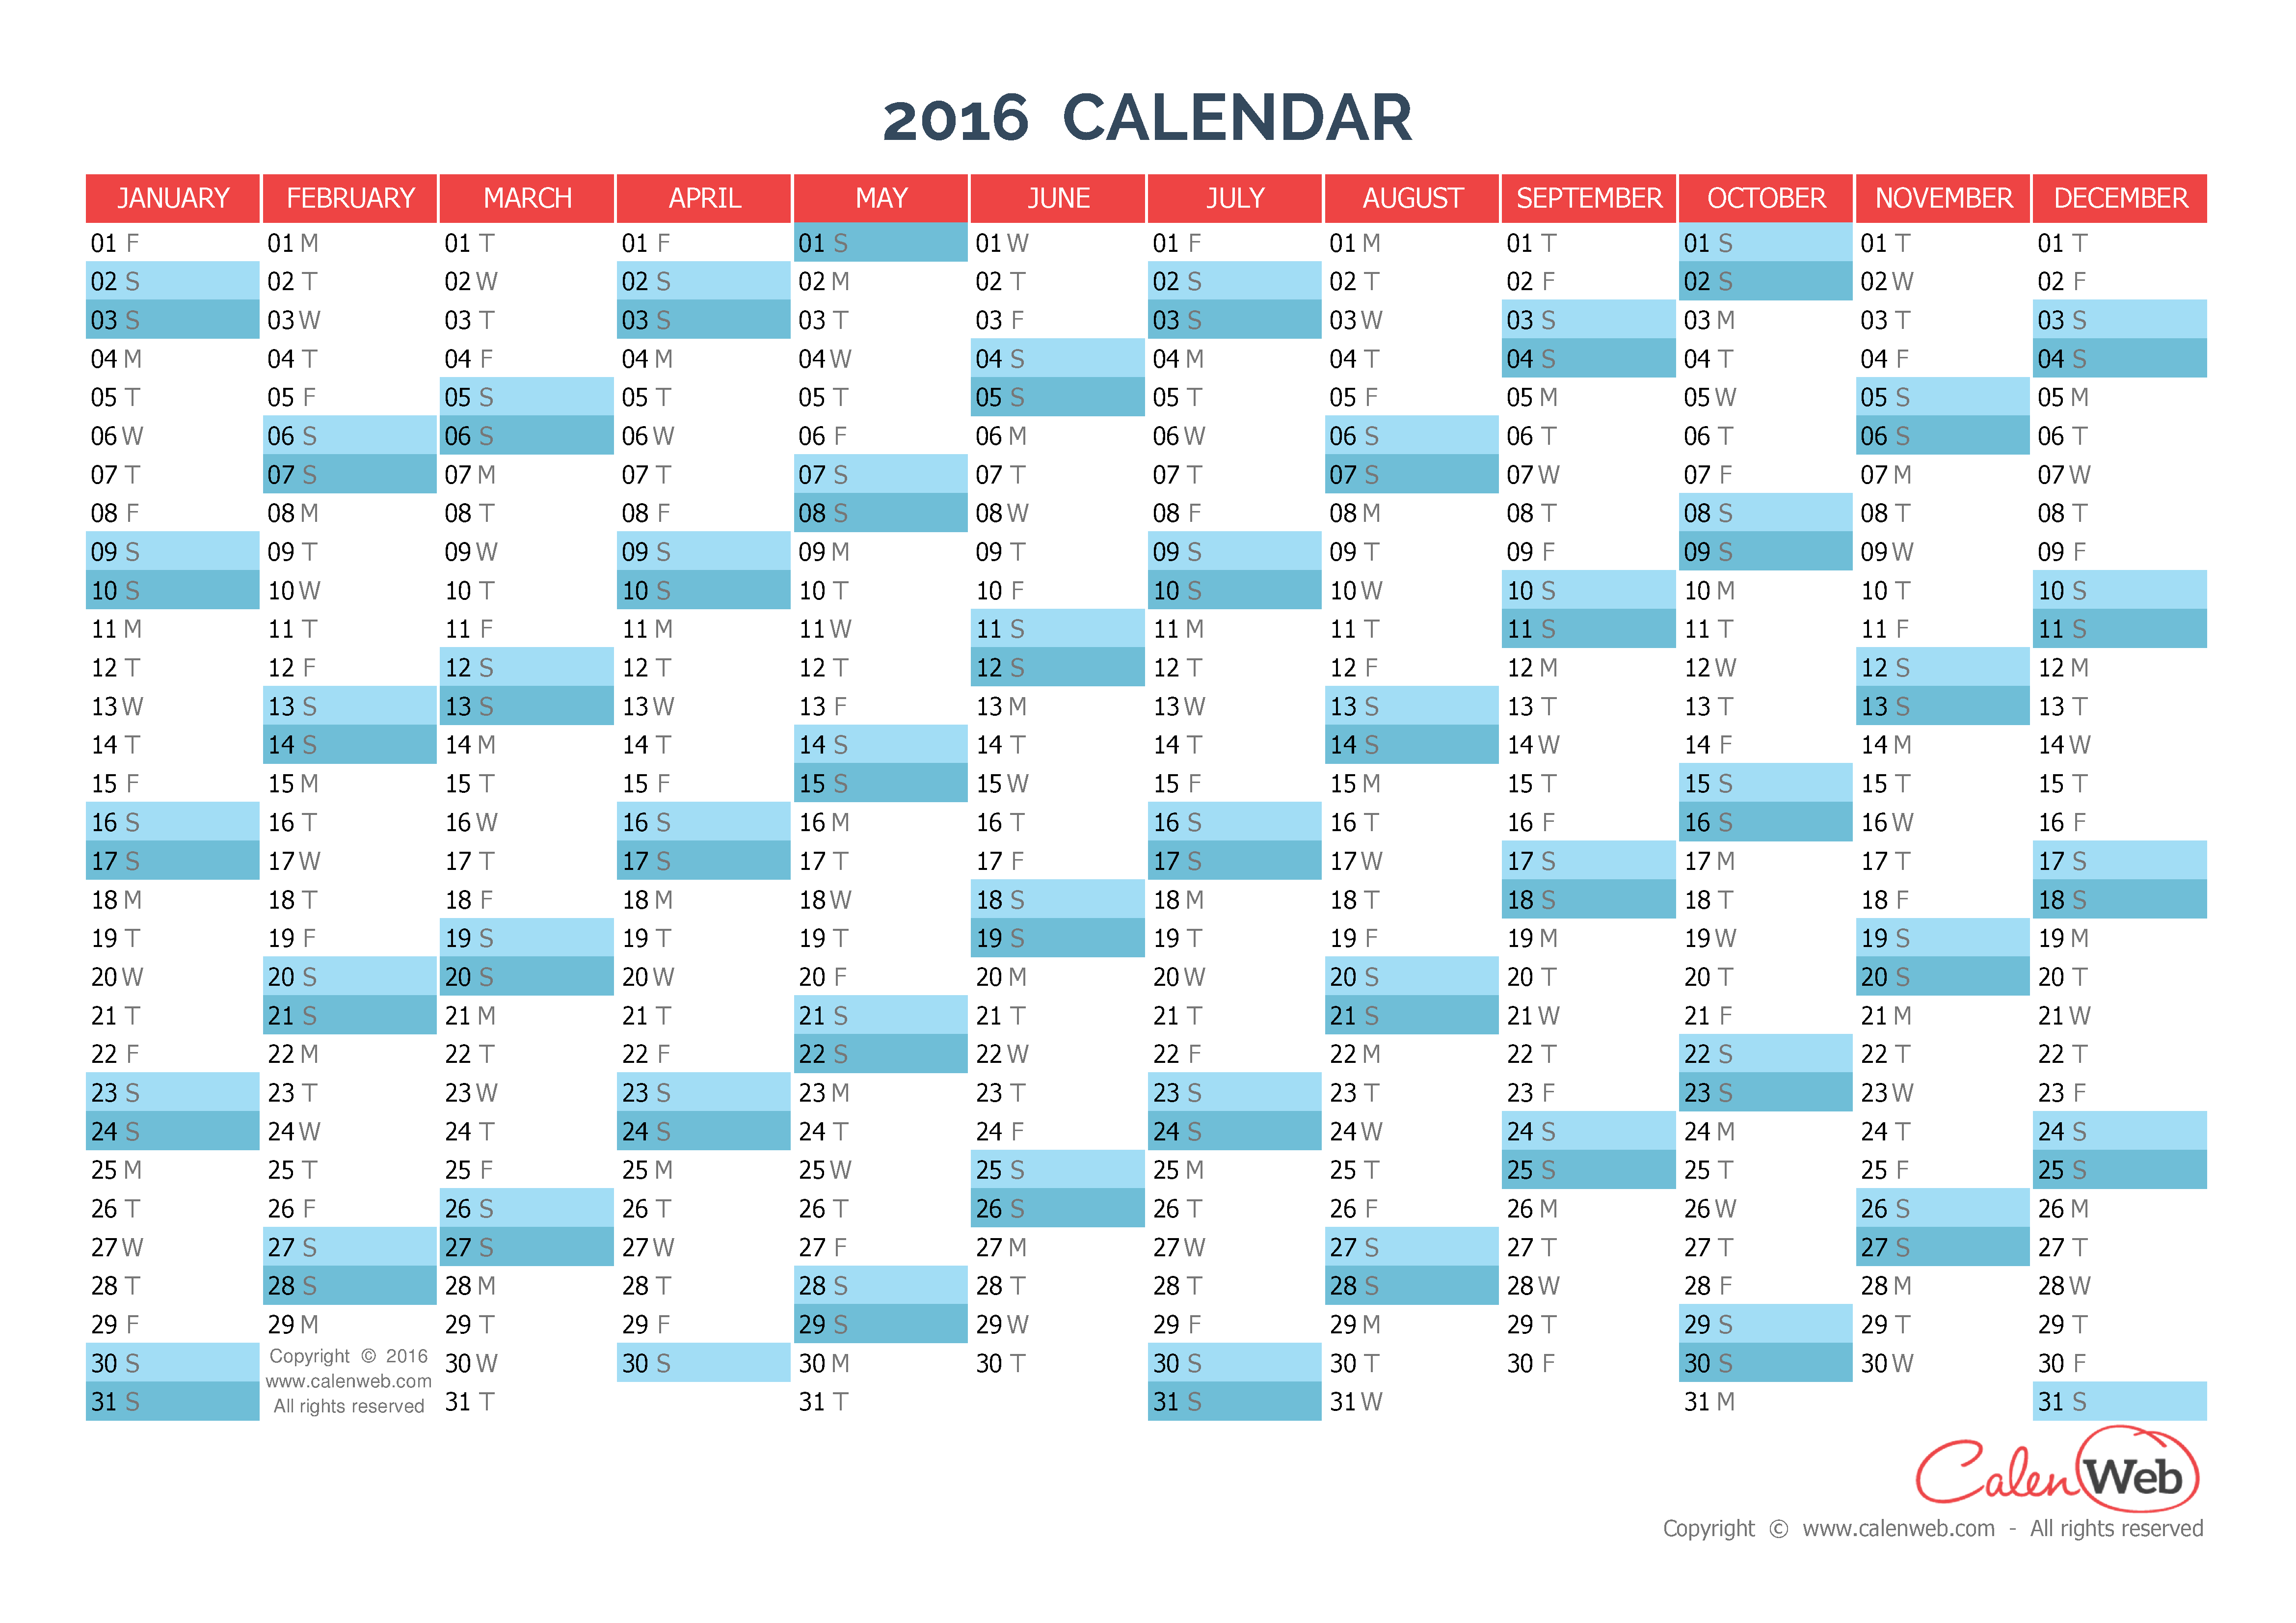 Yearly calendar – Year 2016 Yearly horizontal planning - Calenweb.com